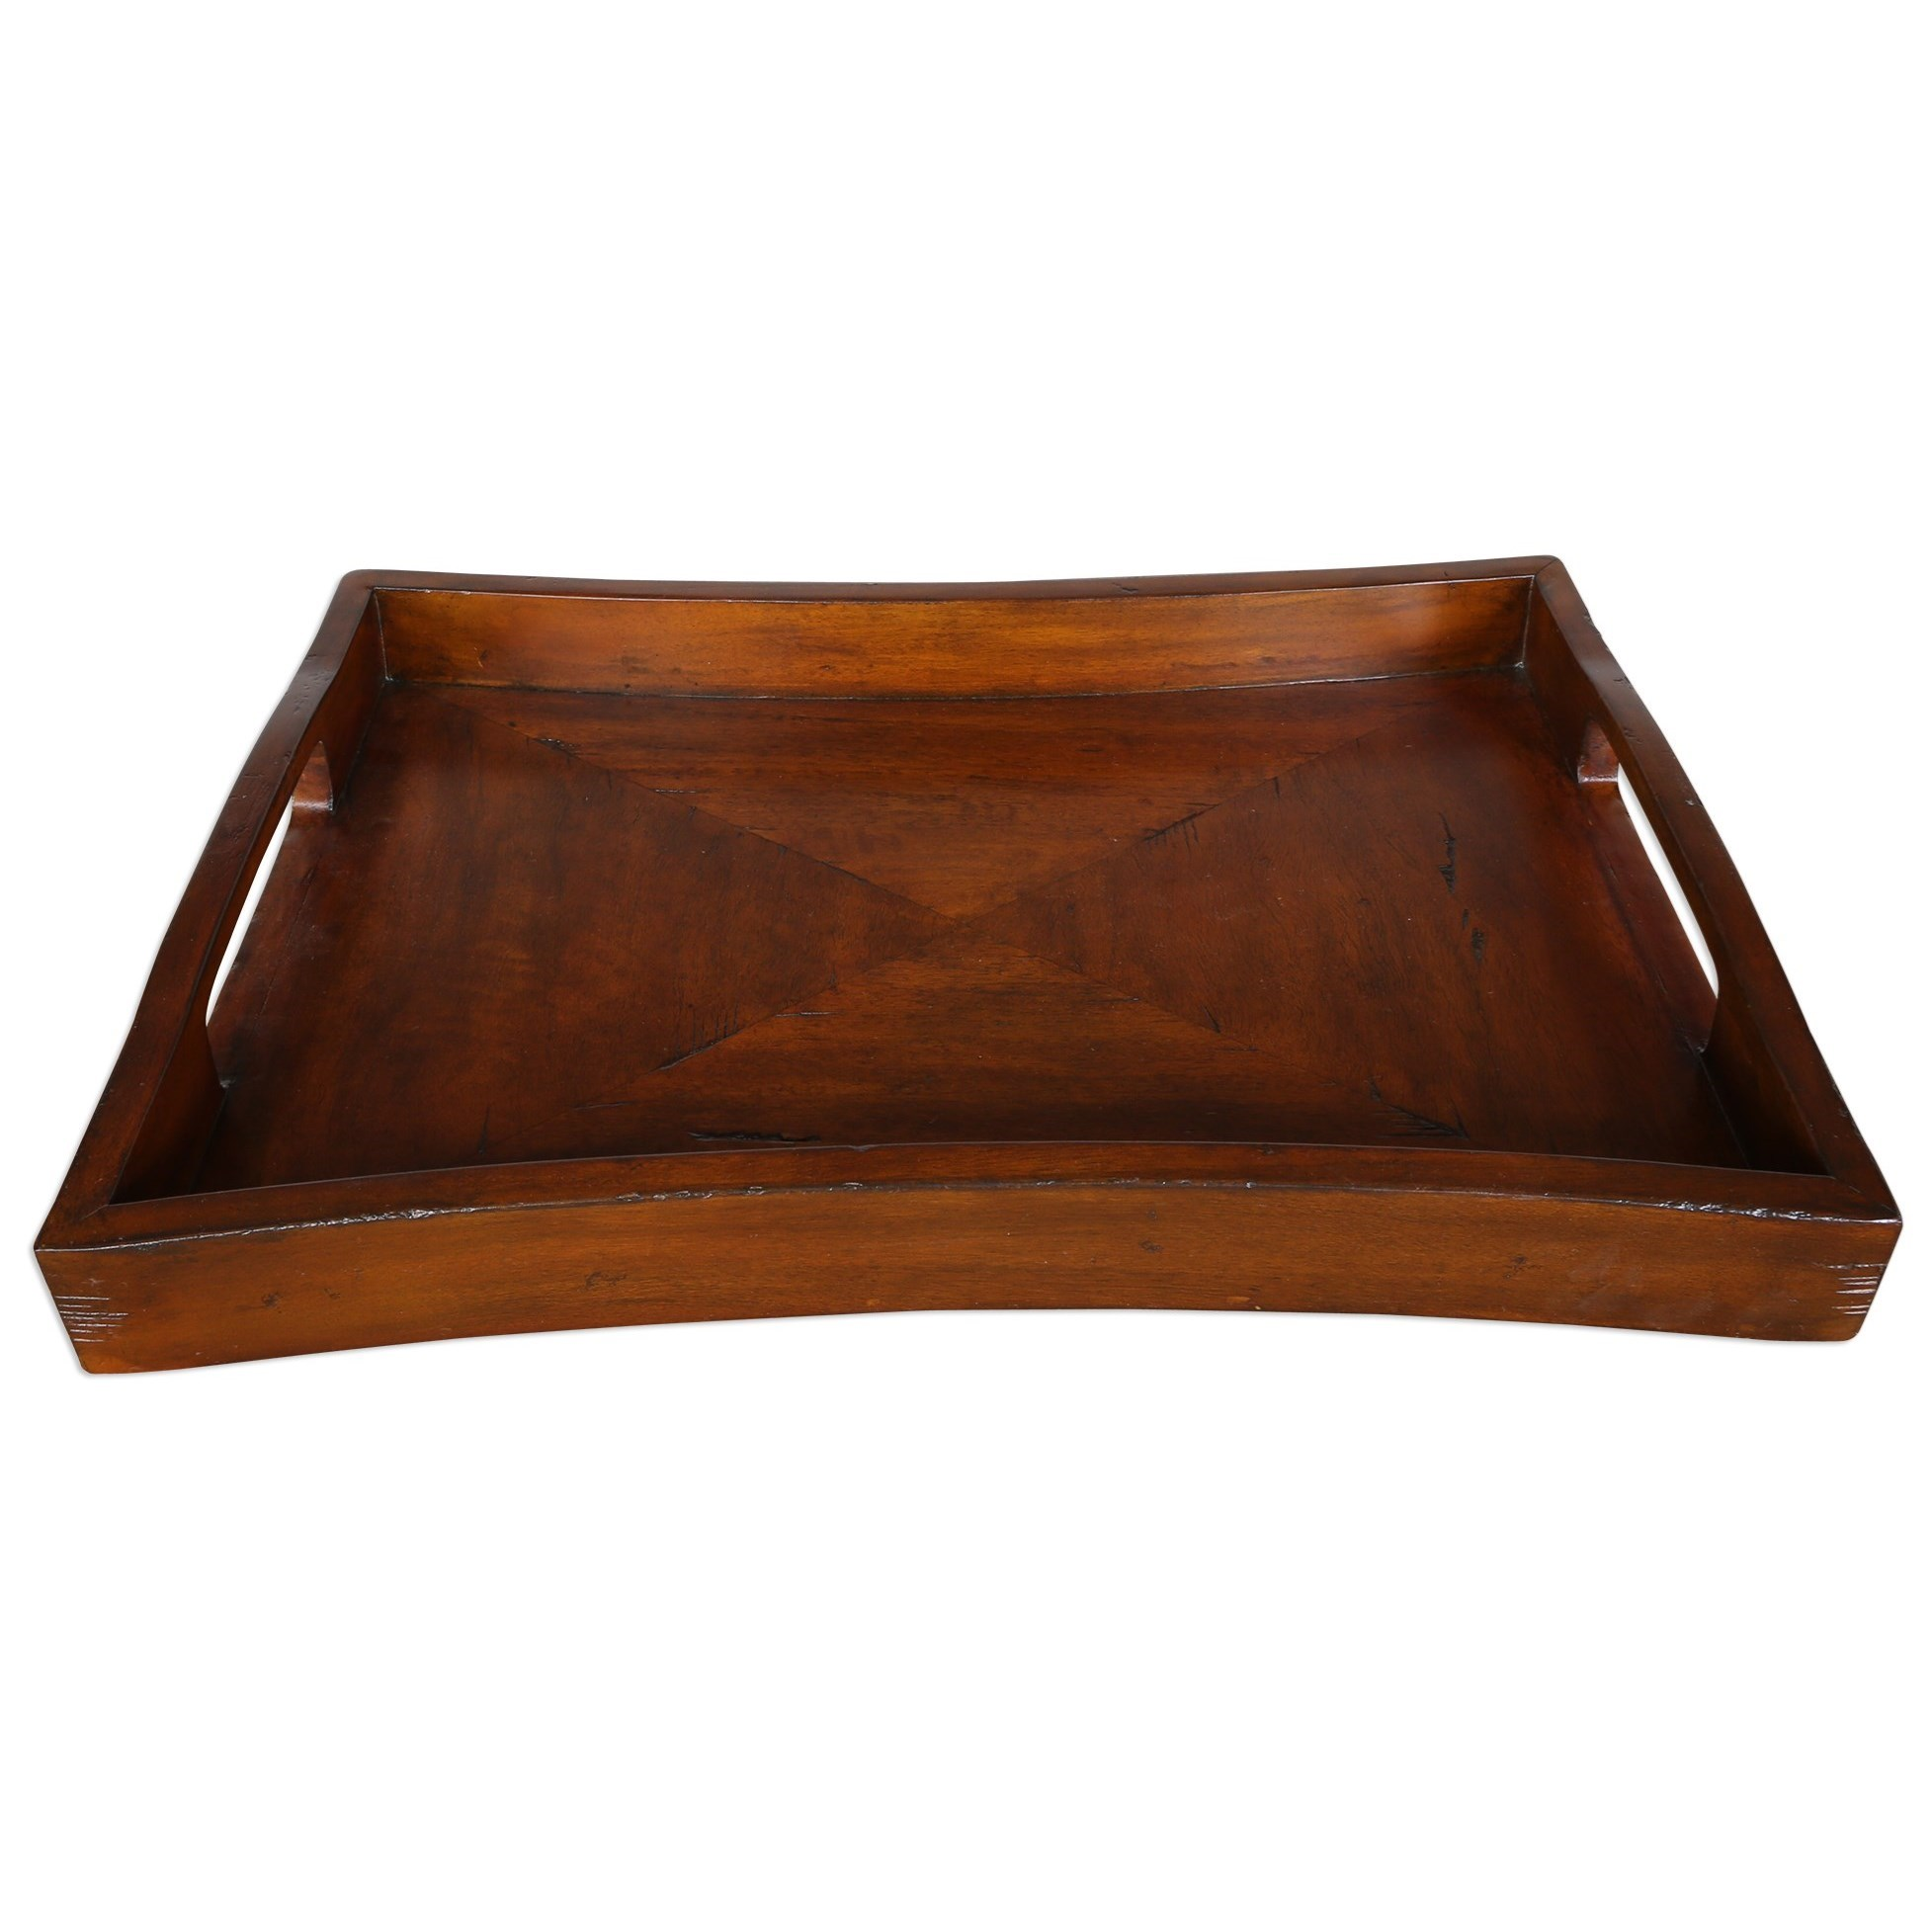 Uttermost Accessories Enrico Wooden Tray - Item Number: 17093